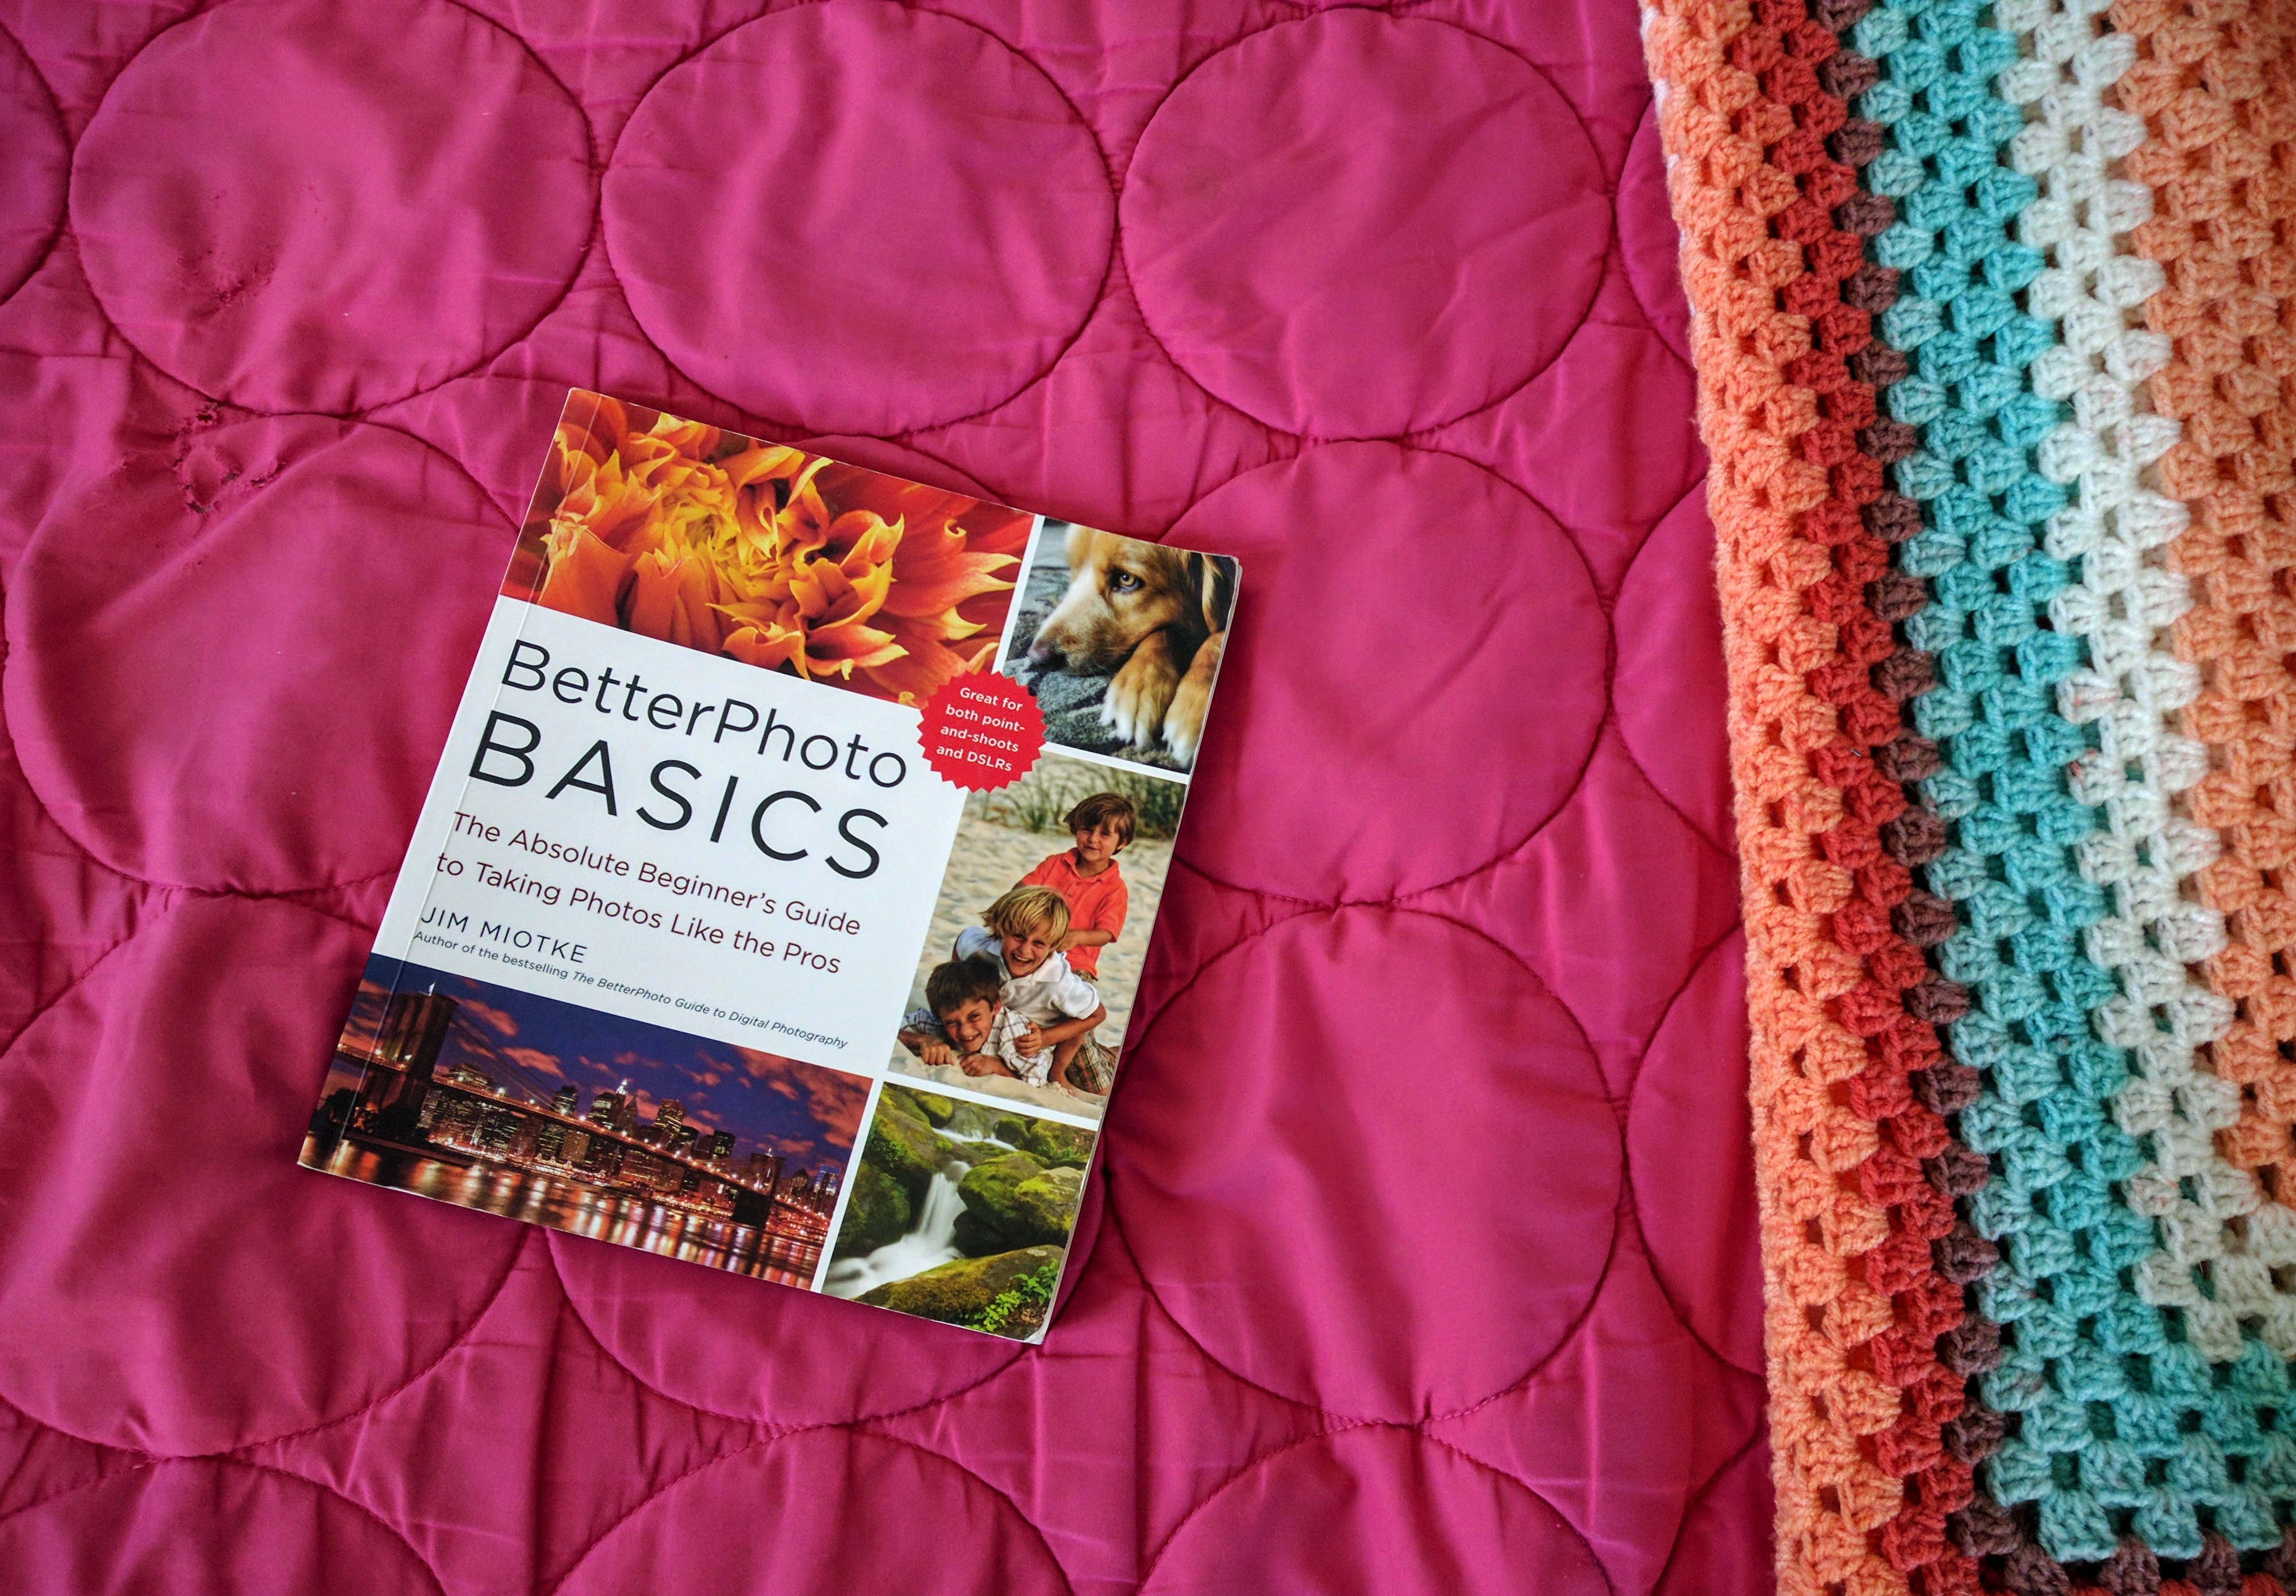 Textbook on bedsheets